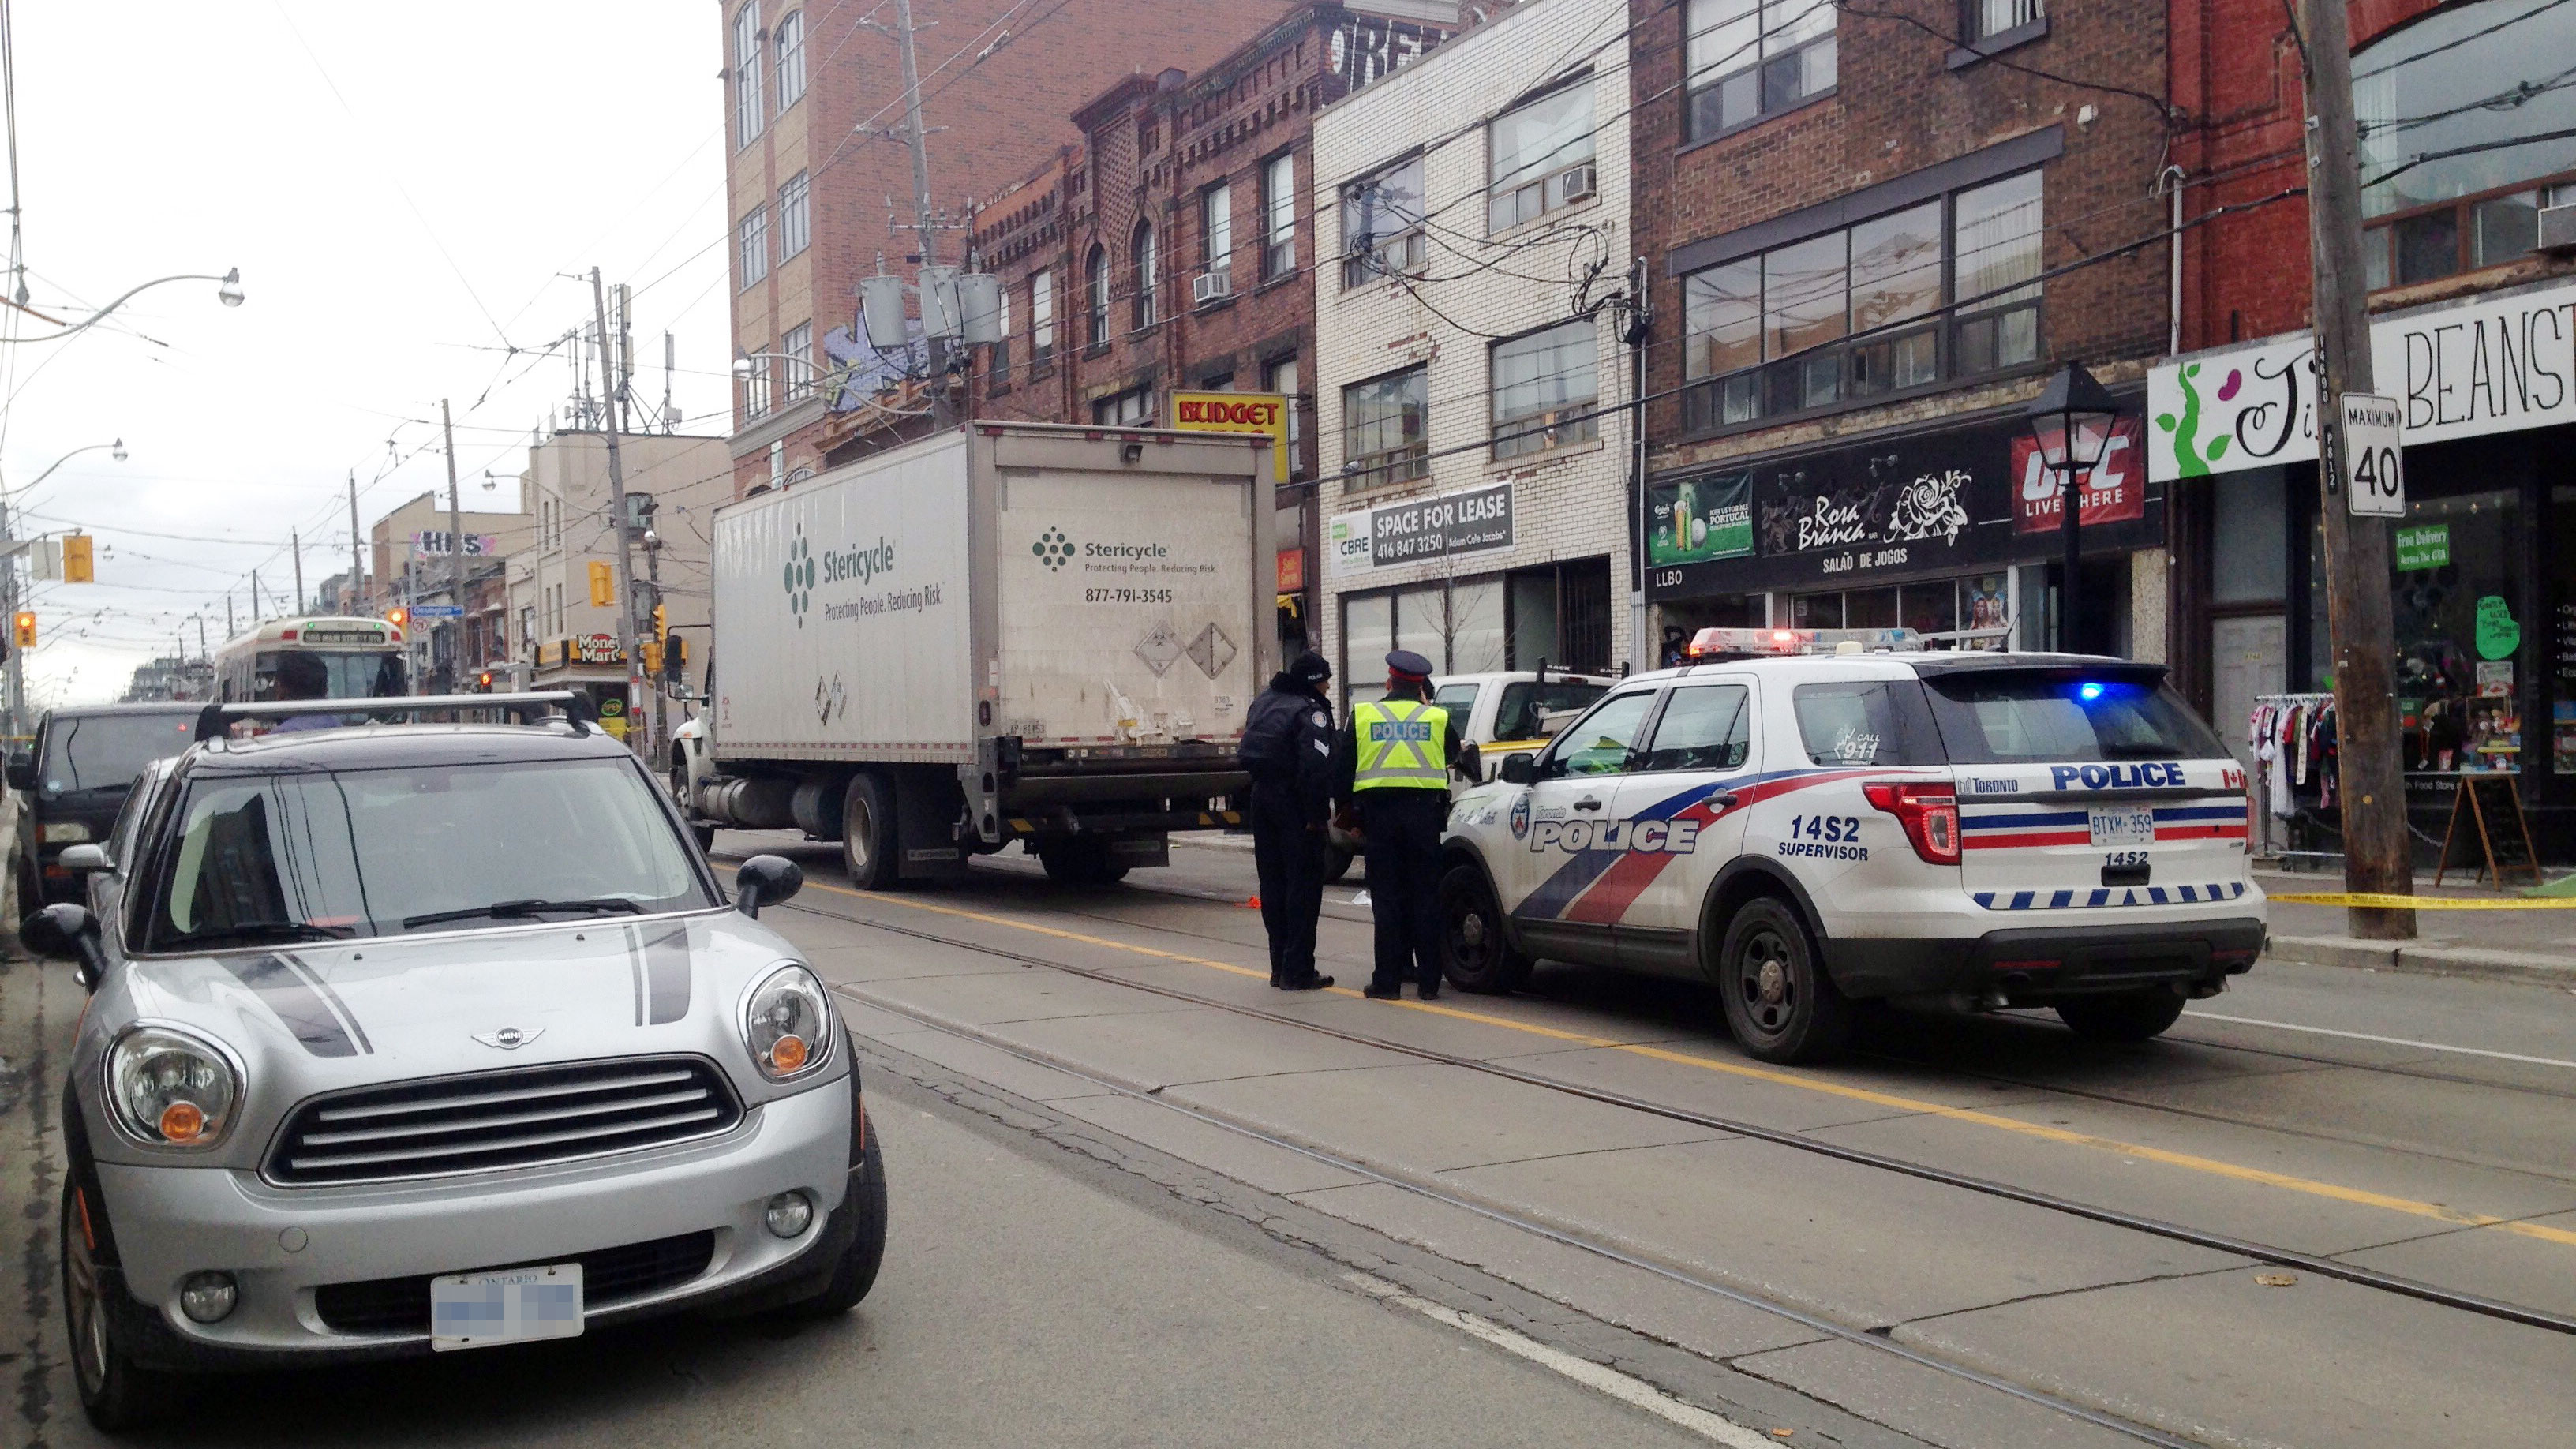 Police investigate after a cyclist was hit by a truck on College Street in Toronto's Little Italy neighbourhood on Dec. 20, 2017. CITYNEWS/Daniel Berry